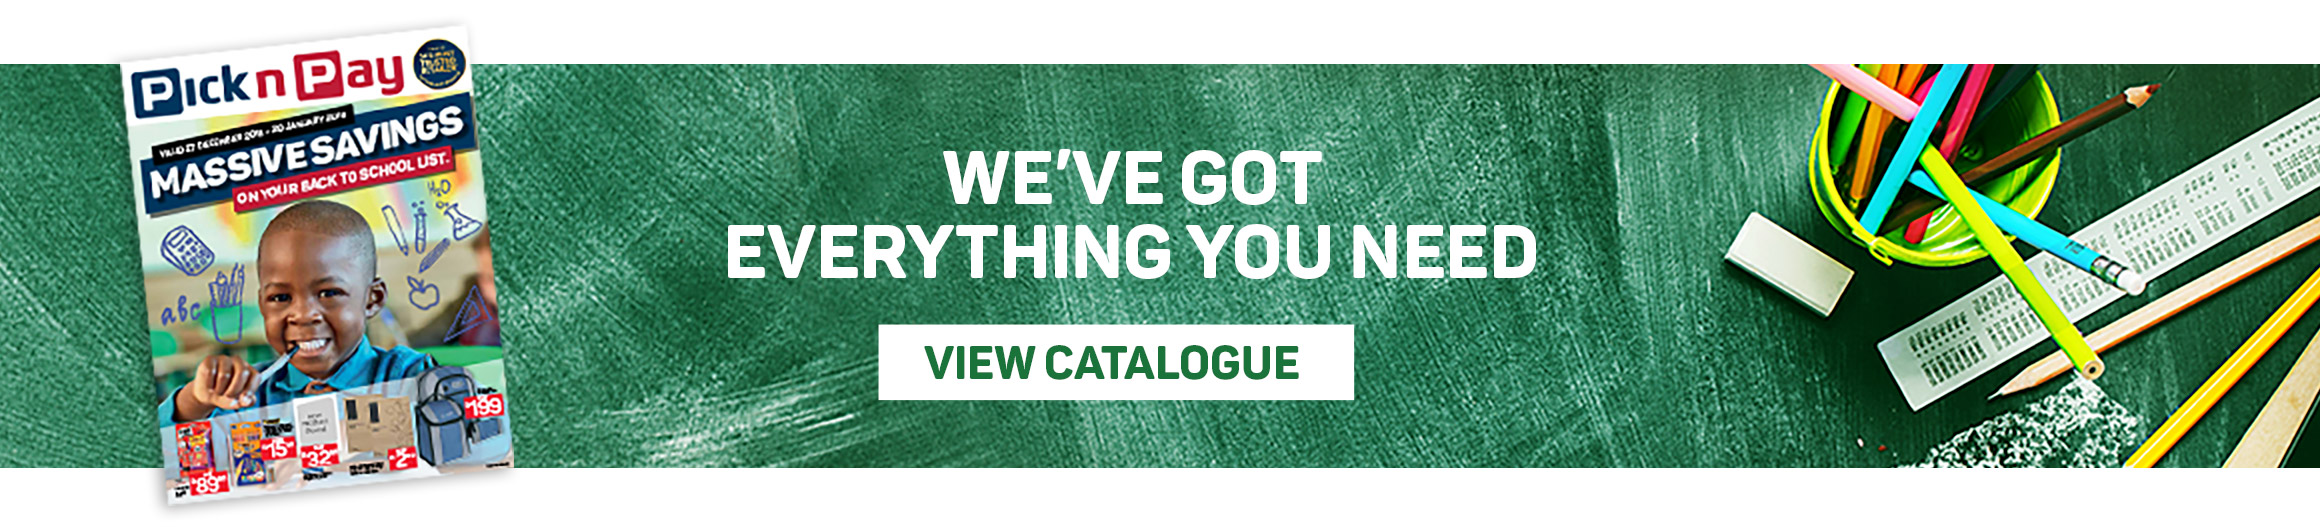 We've go everything you need. View catalogue